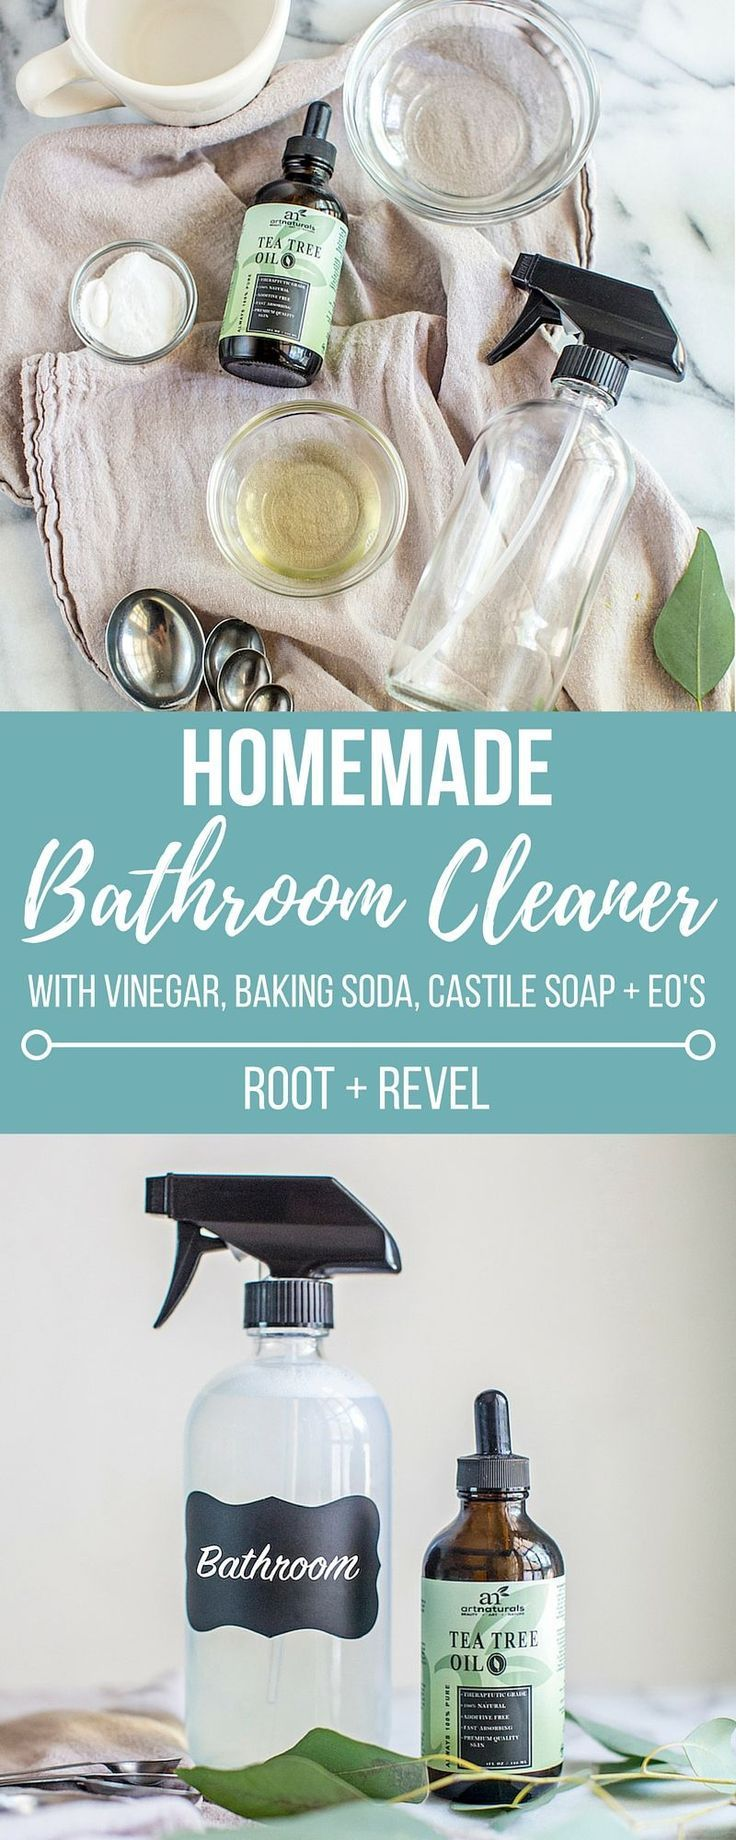 Homemade Bathroom Cleaner Recipe Homemade bathroom